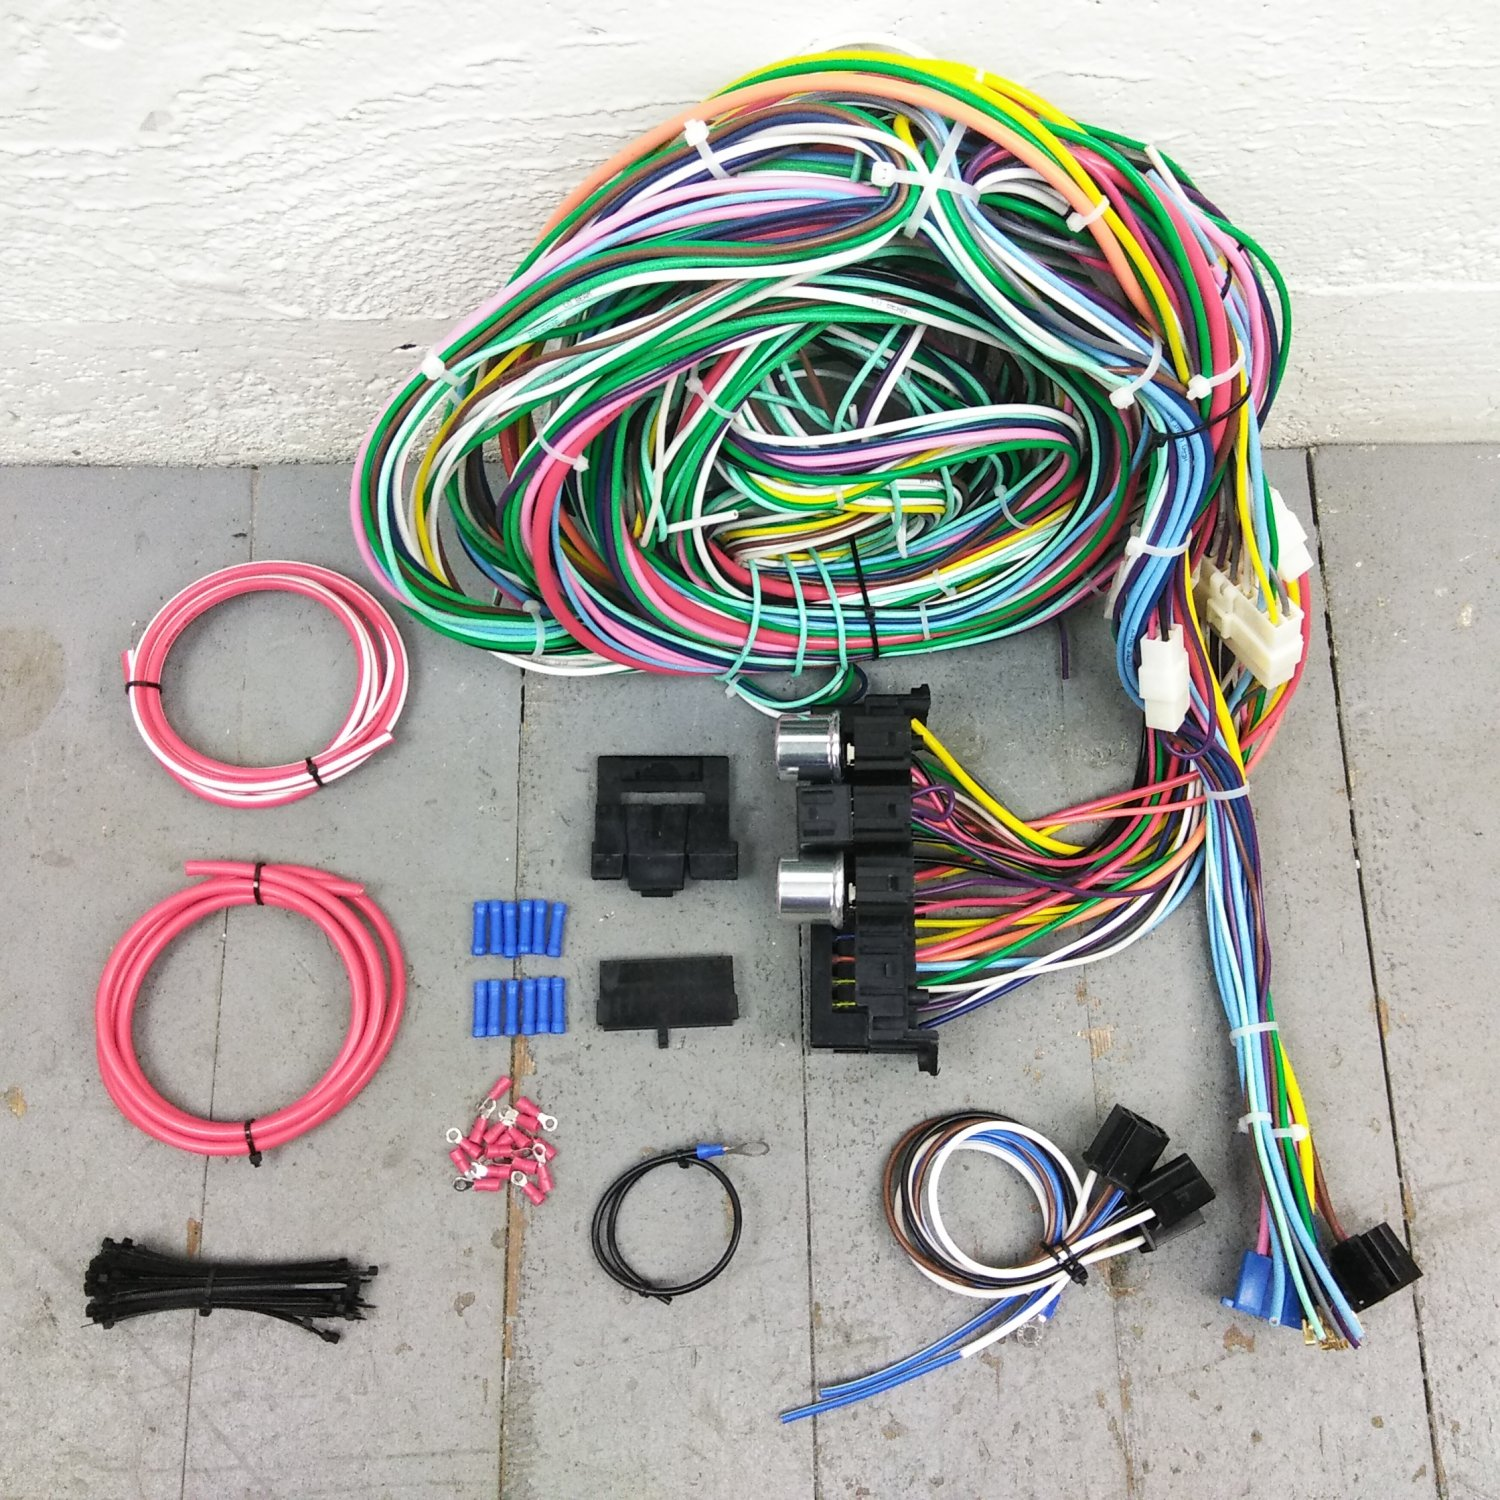 1964 - 1967 Buick Skylark Wire Harness Upgrade Kit fits painless circuit  update. Bar_Product_Description_C